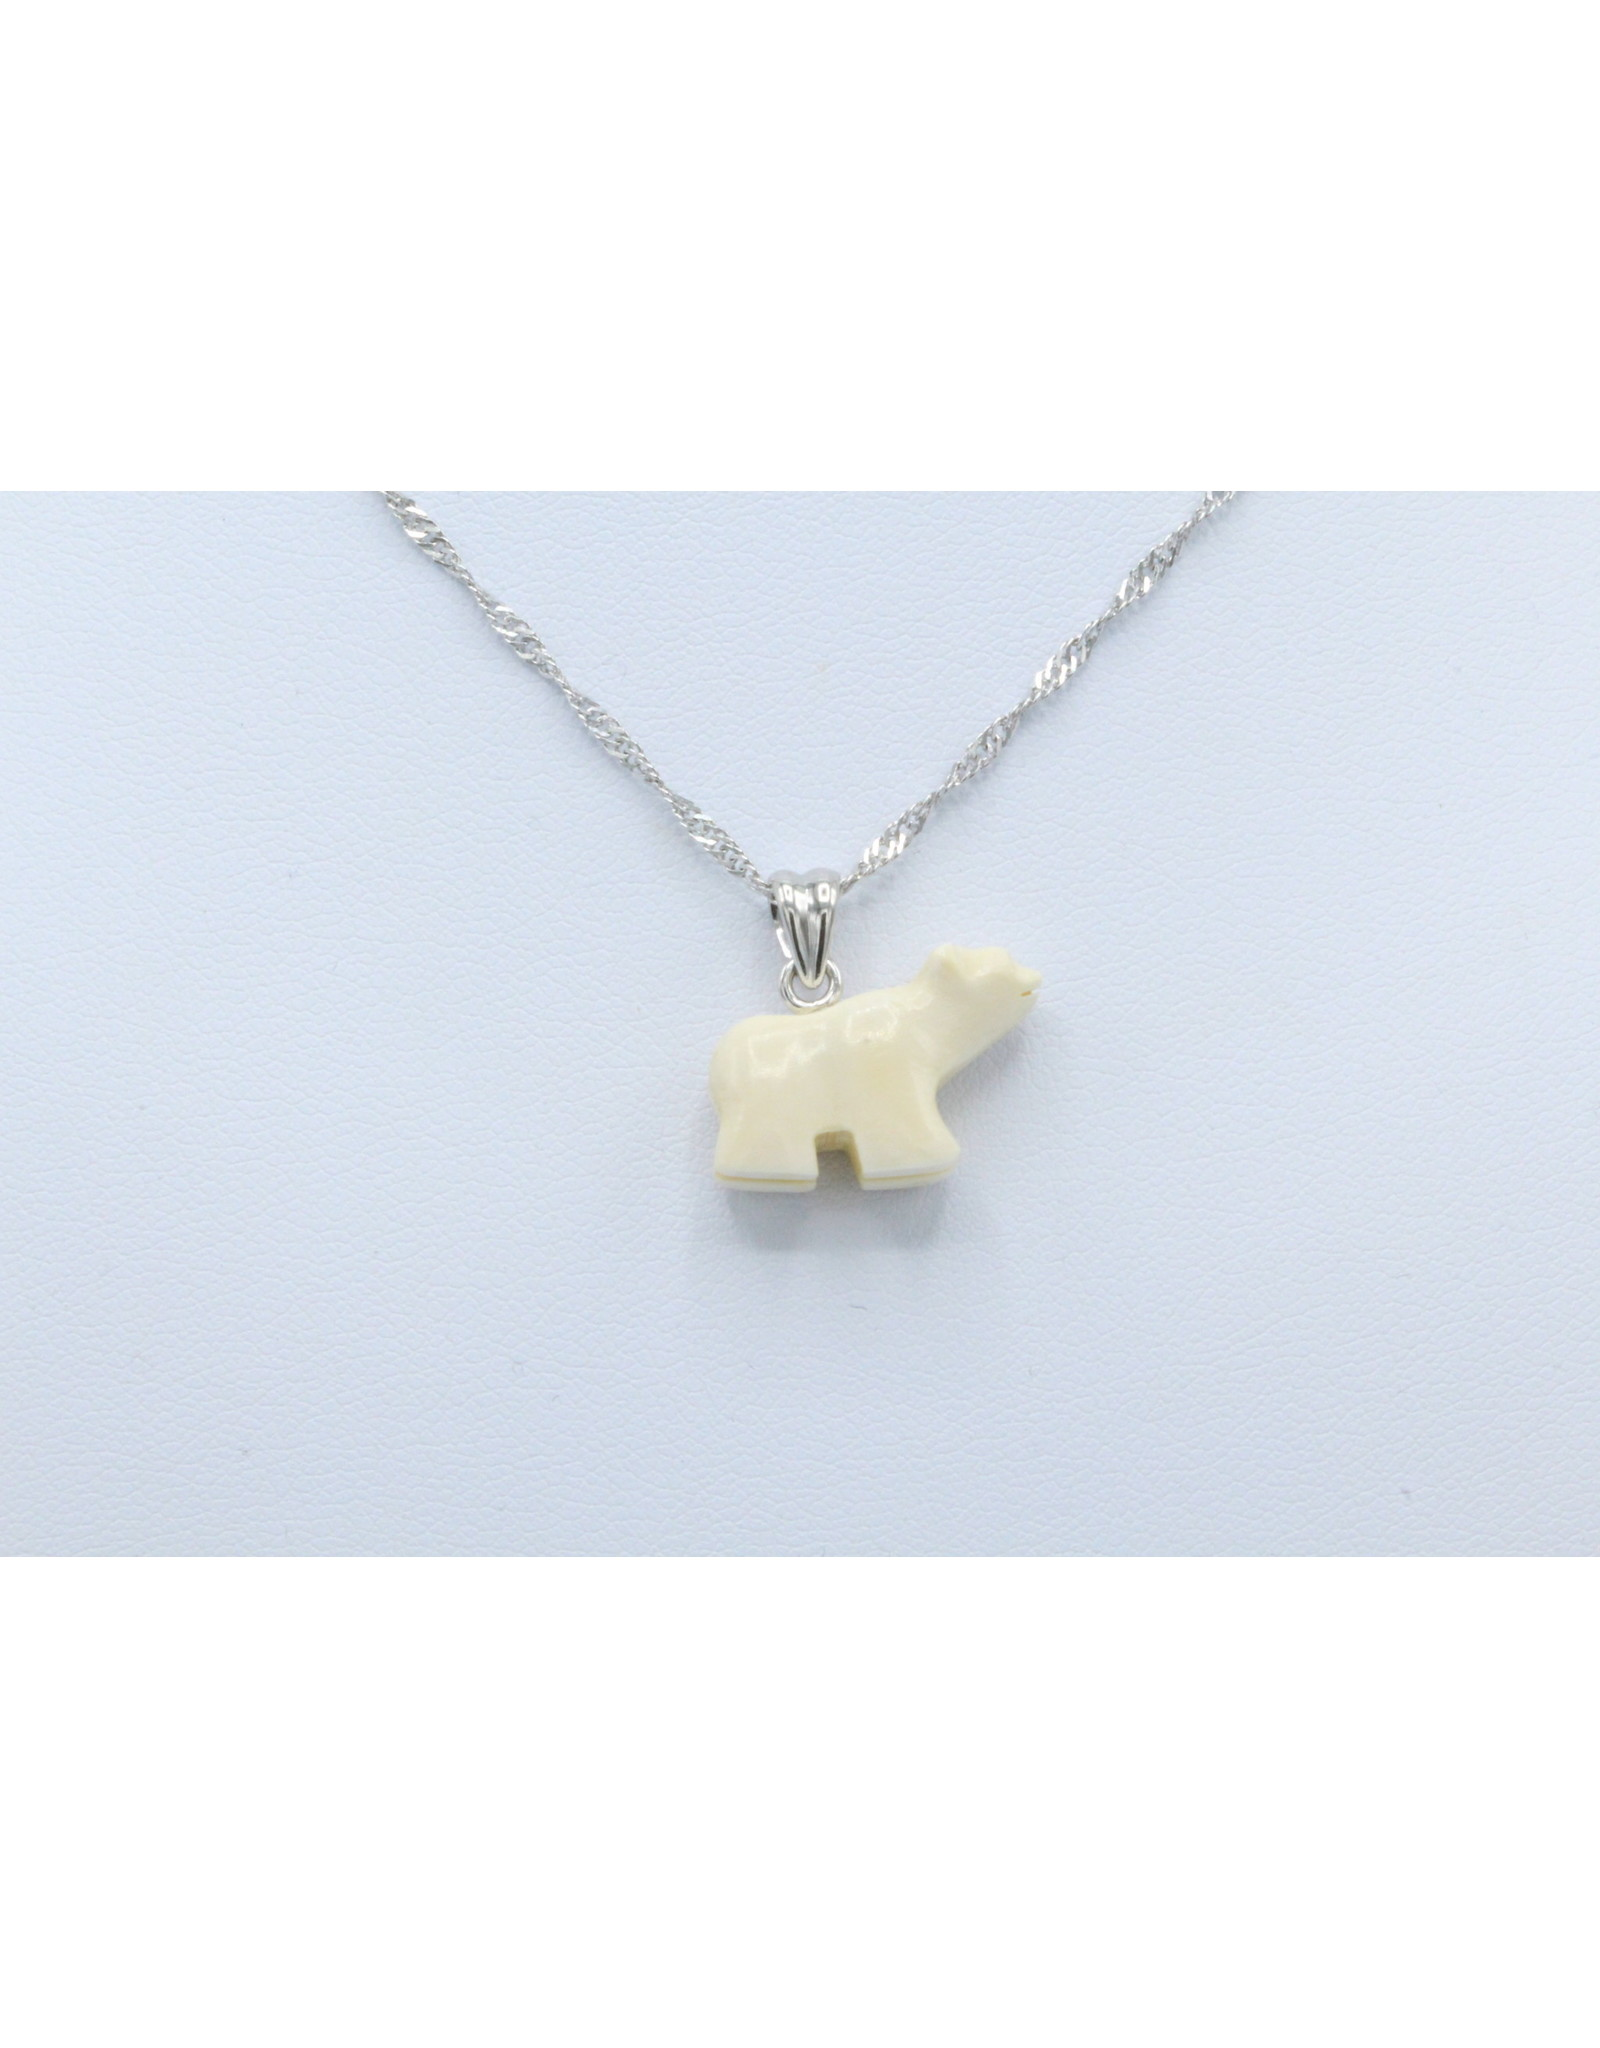 Mammoth Bear Necklace - MPS59